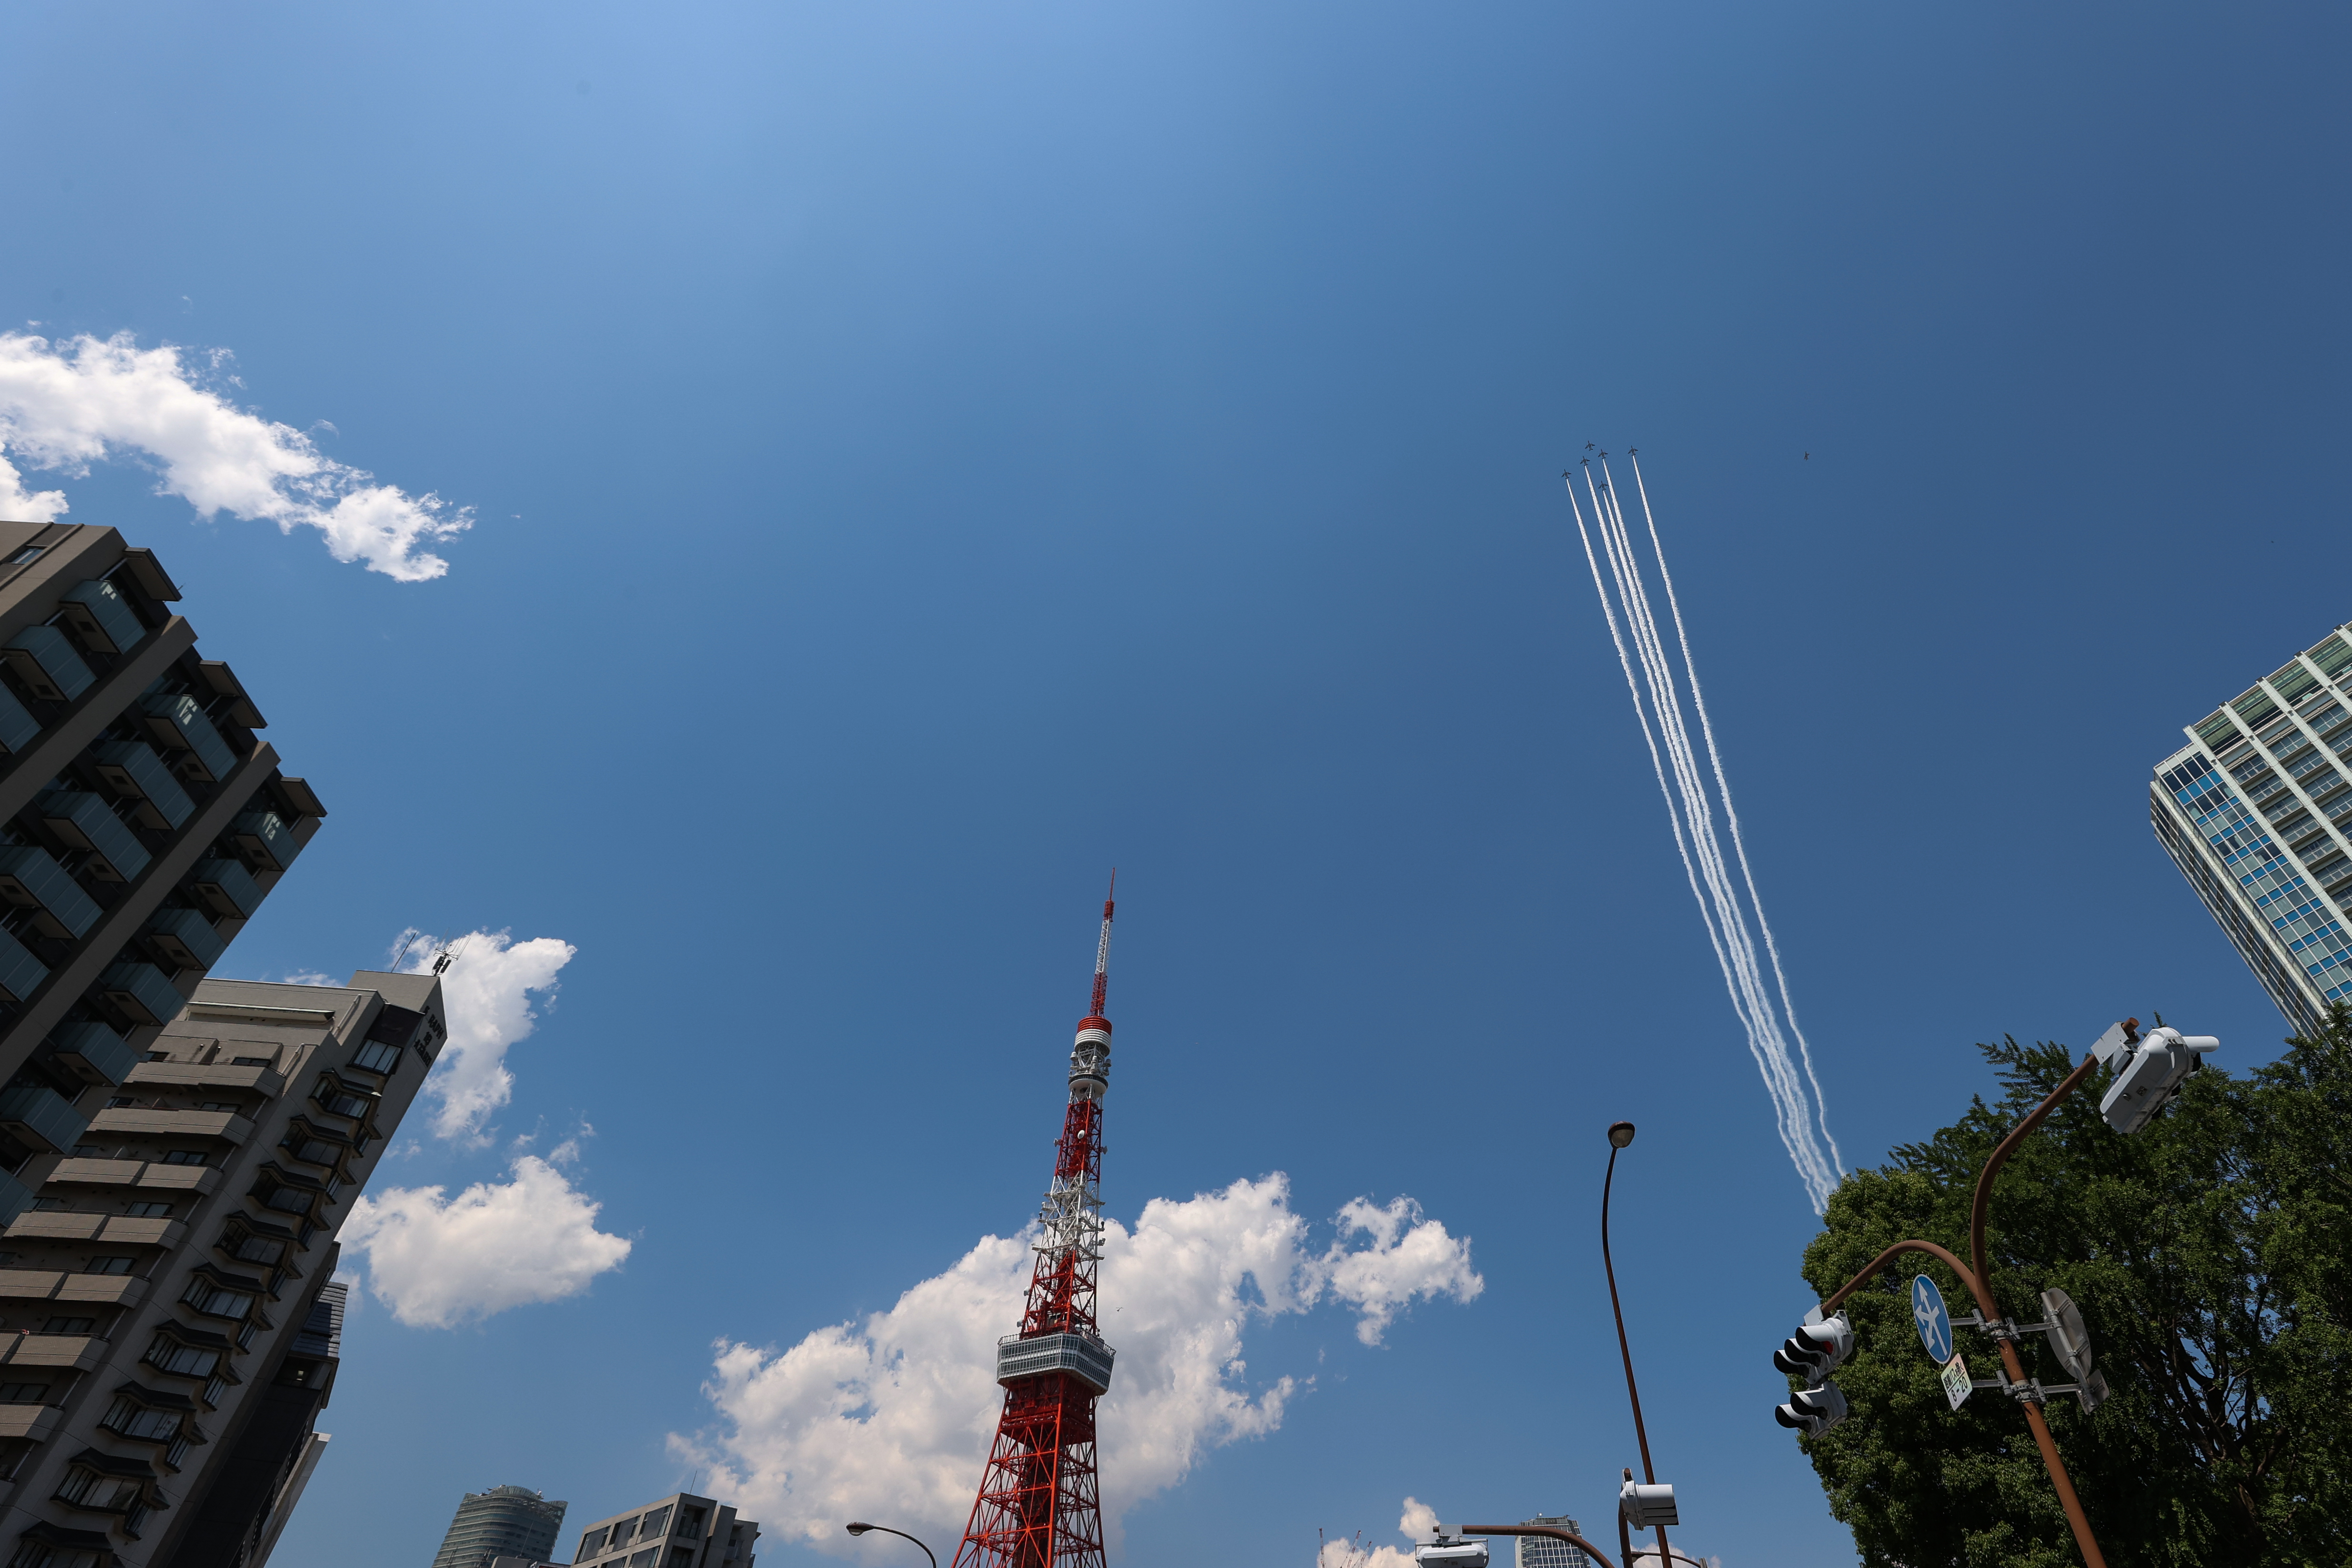 TOKYO, JAPAN - MAY 29: Aircrafts from Japan's Air Self-Defense Force's acrobatic flight team, known as Blue Impulse, fly over central Tokyo area on May 29, 2020 in Tokyo, Japan. Japan's Air Self-Defense Force's Blue Impulse aerobatics corps flew over Tokyo to show respect and gratitude towards medical workers dealing with the coronavirus pandemic. (Photo by Takashi Aoyama/Getty Images)